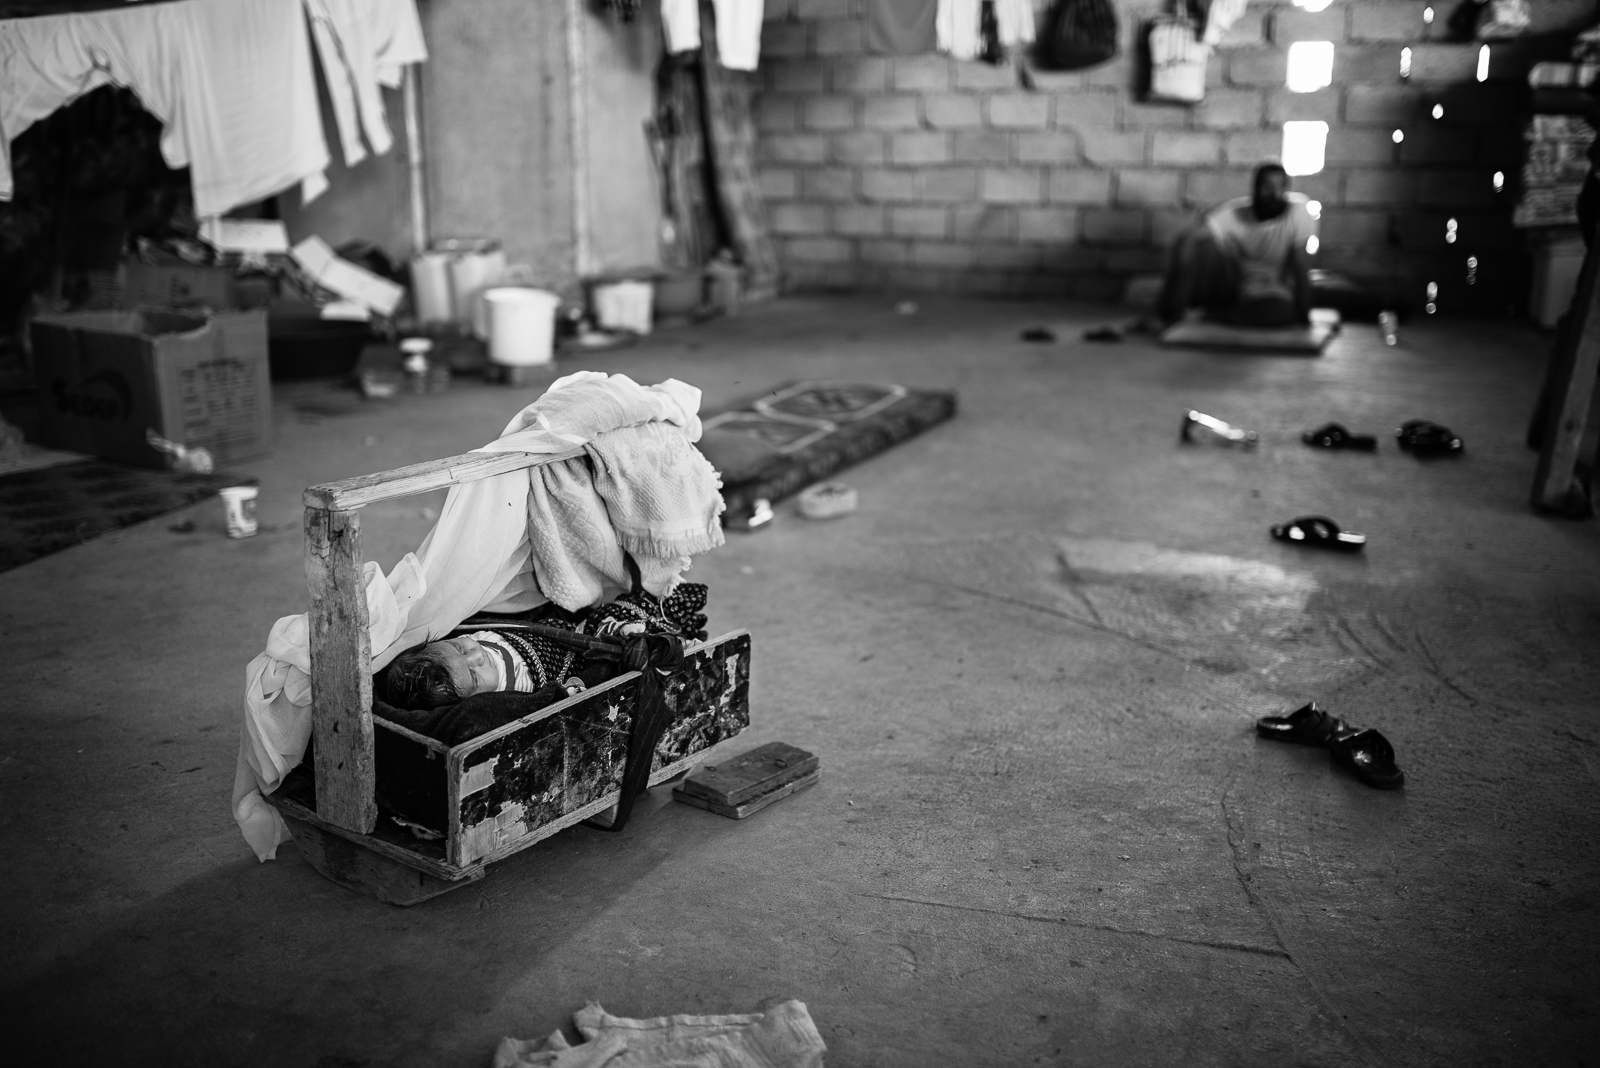 Child's life in a building under construction in Zakho